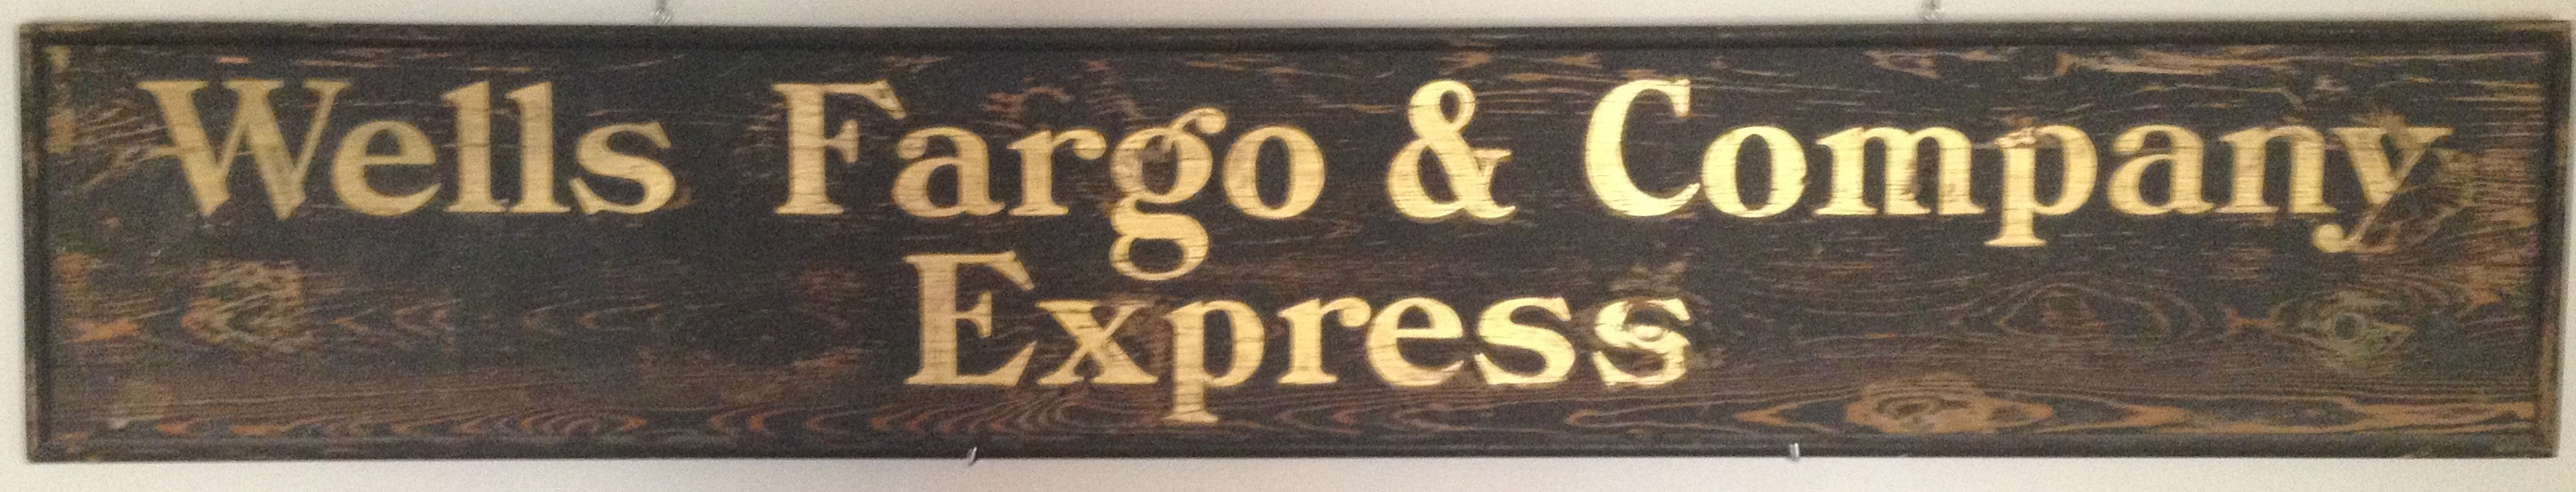 Old West Museum Wells Fargo Wiring Instructions For Cos Express Wood Office Sign